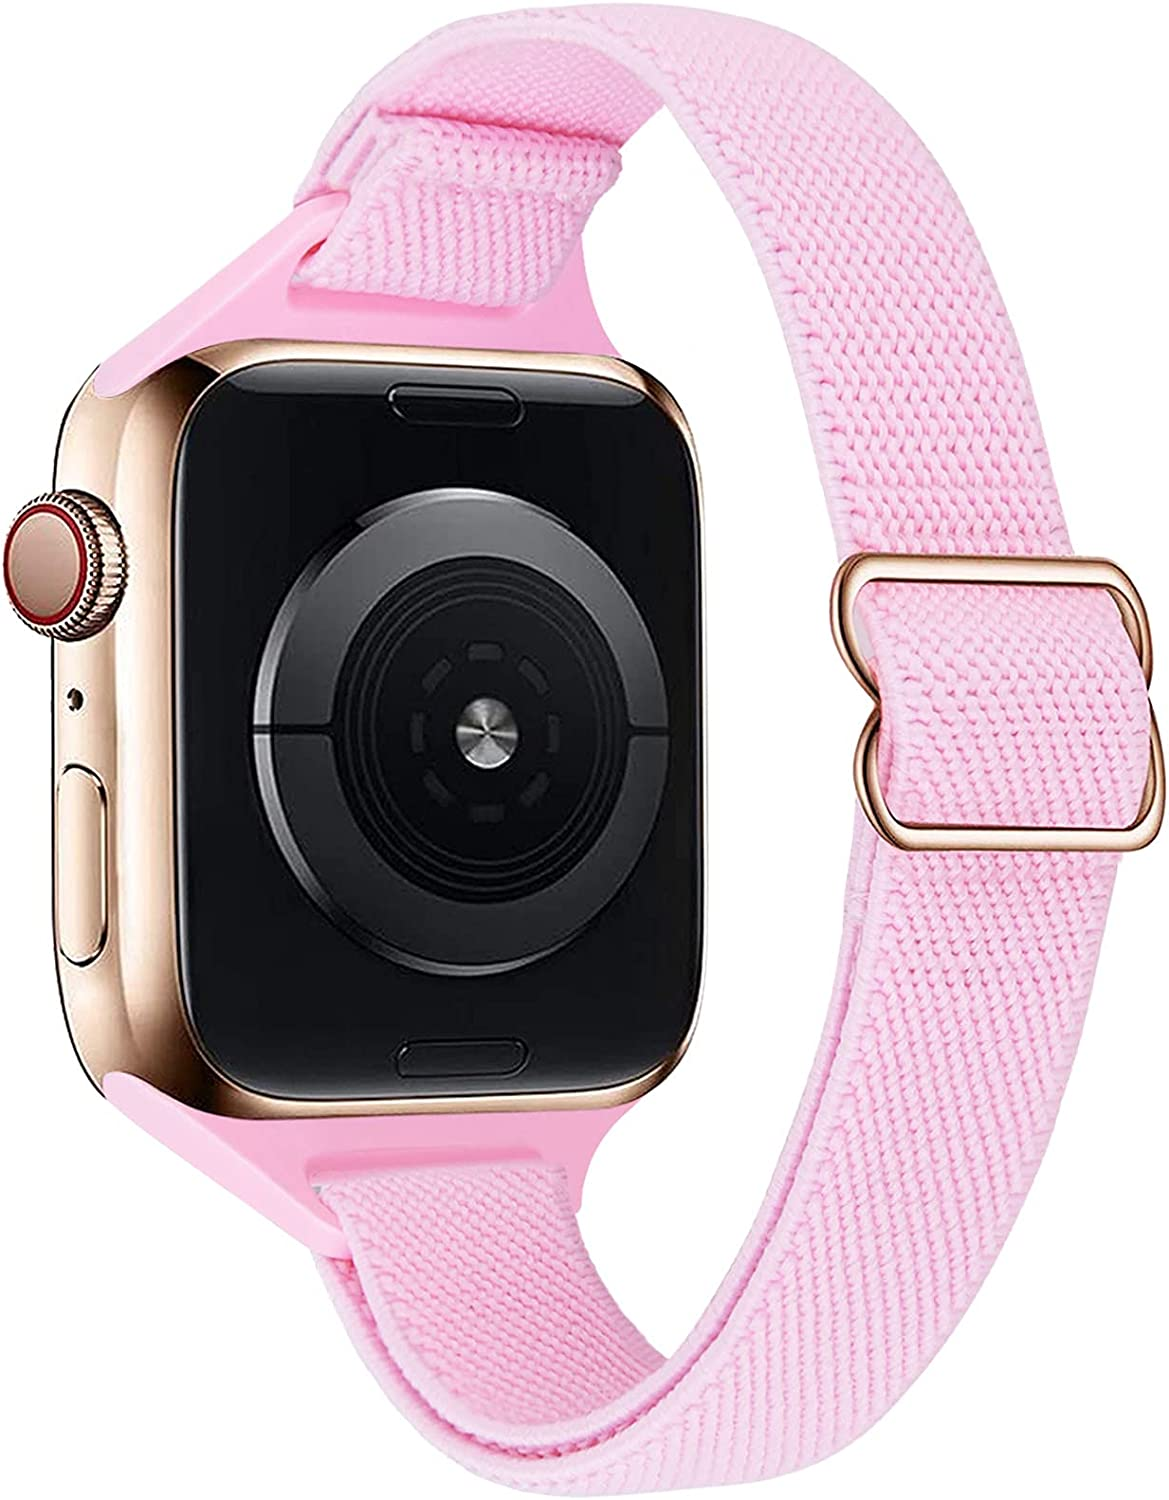 VISOOM Stretchy Slim Solo Loop Bands Compatible with Apple Watch 38mm 40mm 42mm 44mm band-Thin Women Elastics Nylon Replacement Wristband for iWatch Strap Series 6/SE/5/4/3/2/1 Accessories